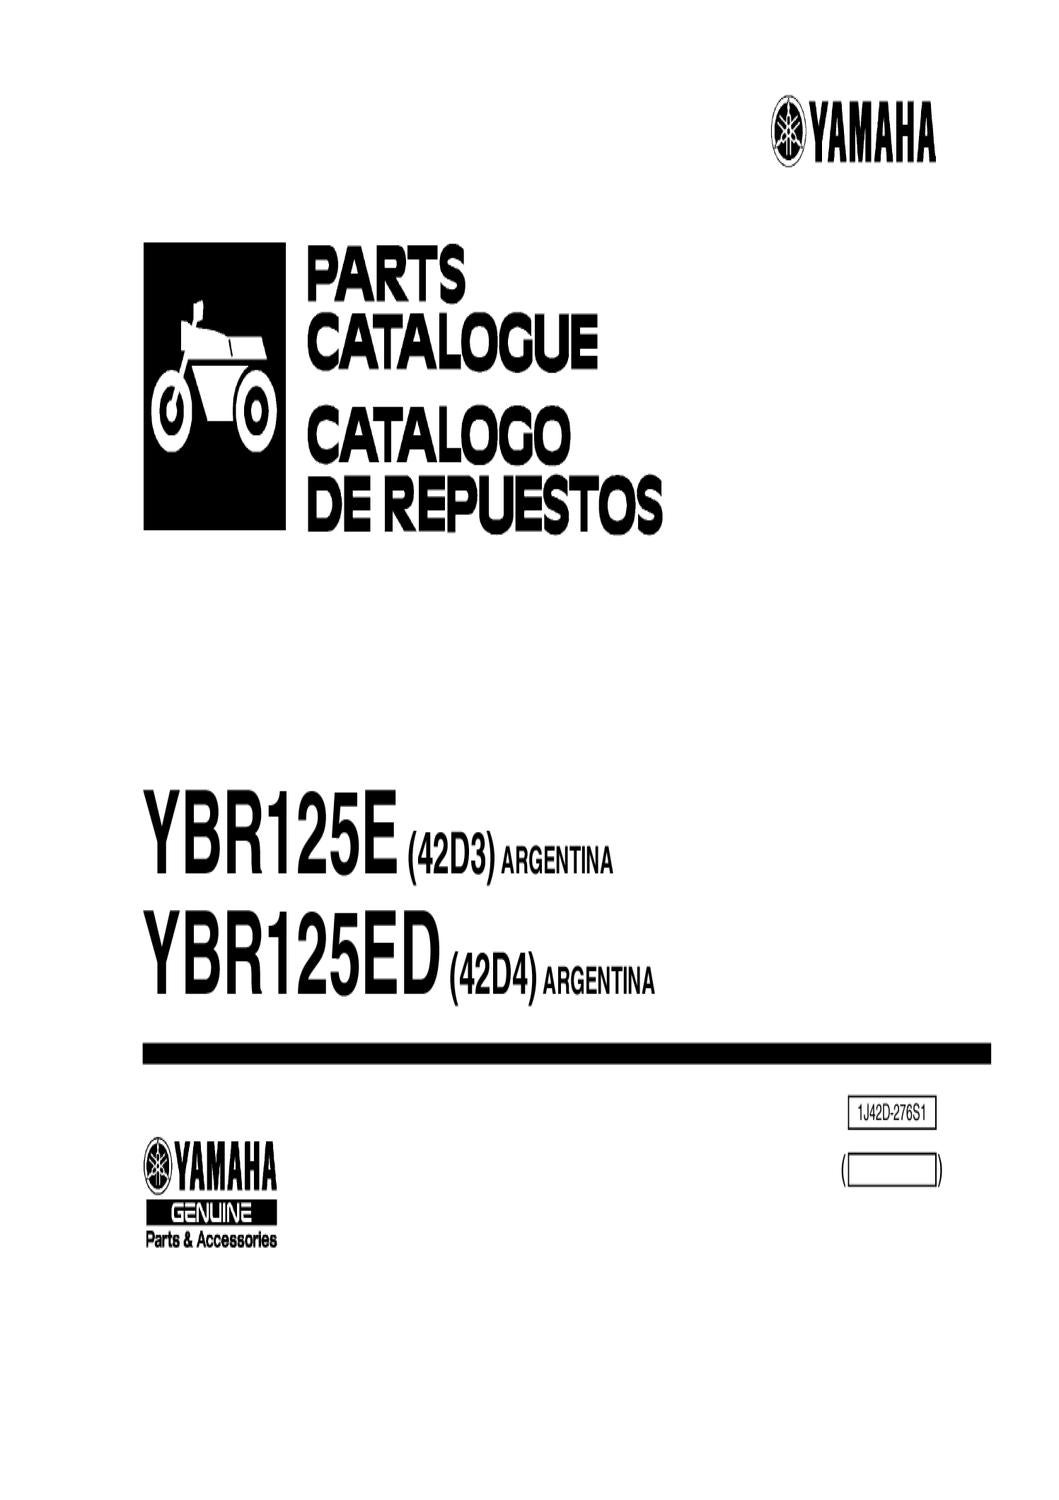 Manual despiece Yamaha YBR 125 ED Llanta aleacion 2010 by